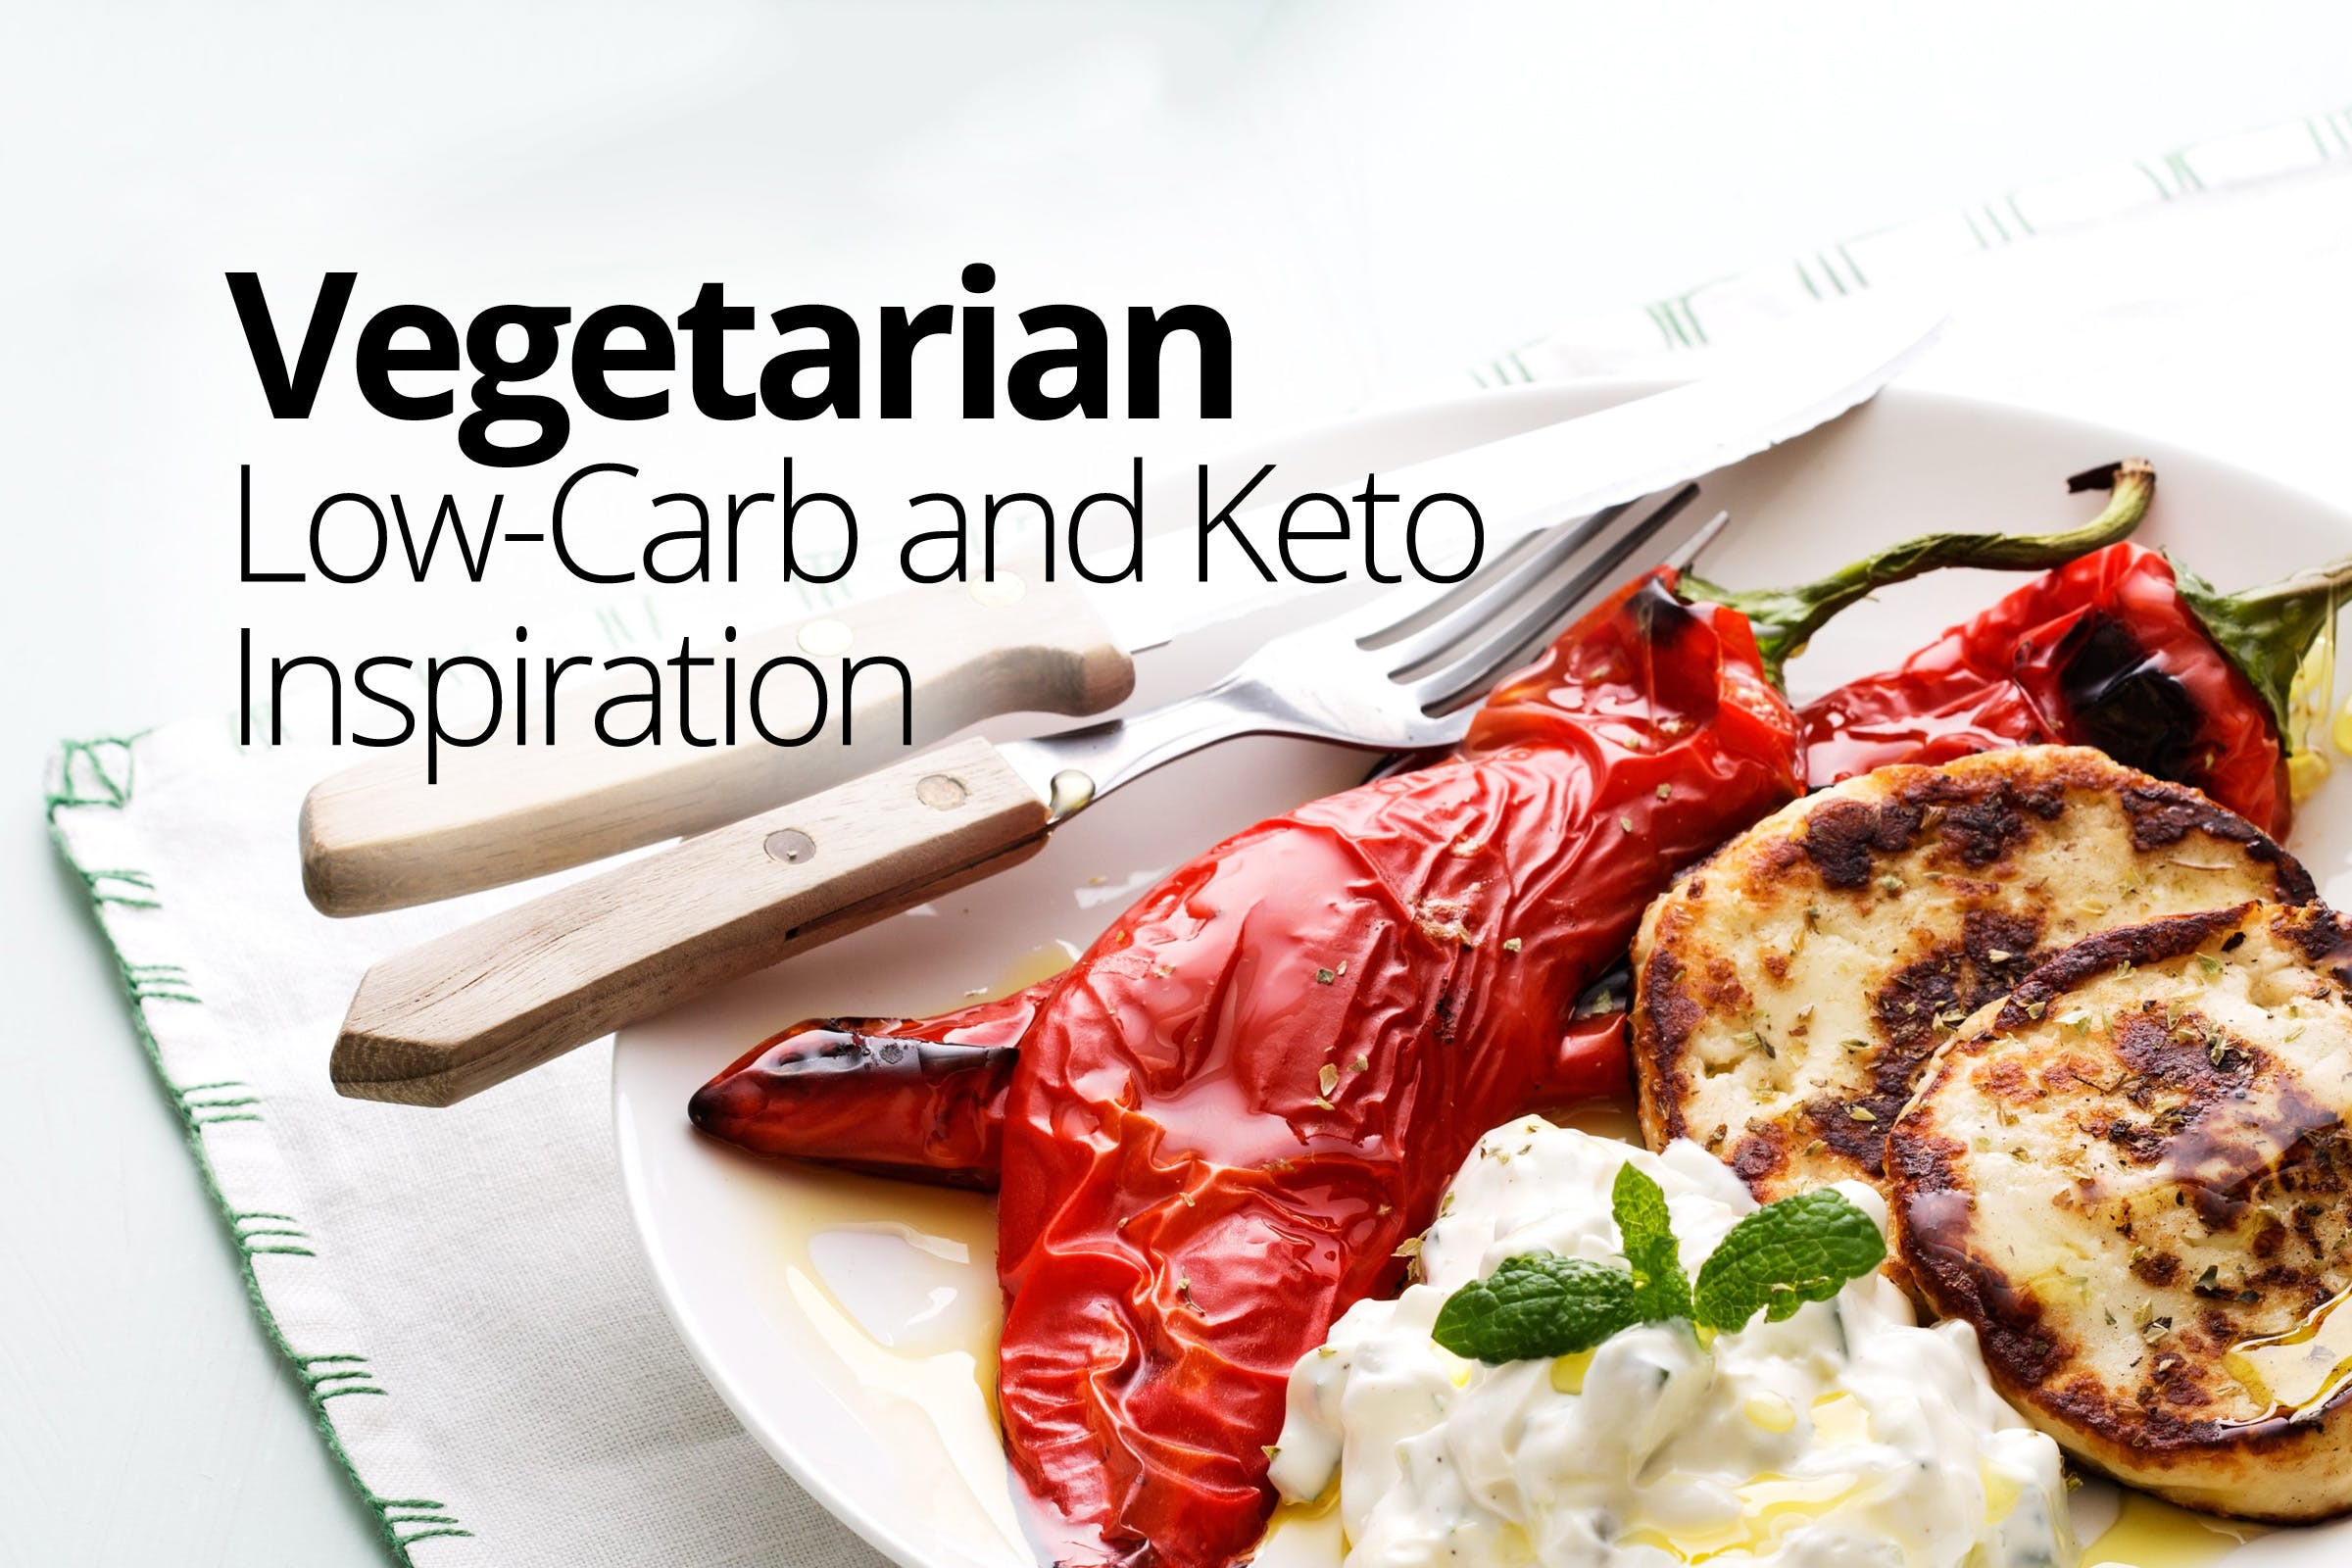 Diet Doctor Low Carb Recipes  Ve arian Low Carb Inspiration Recipes & Meal Plans